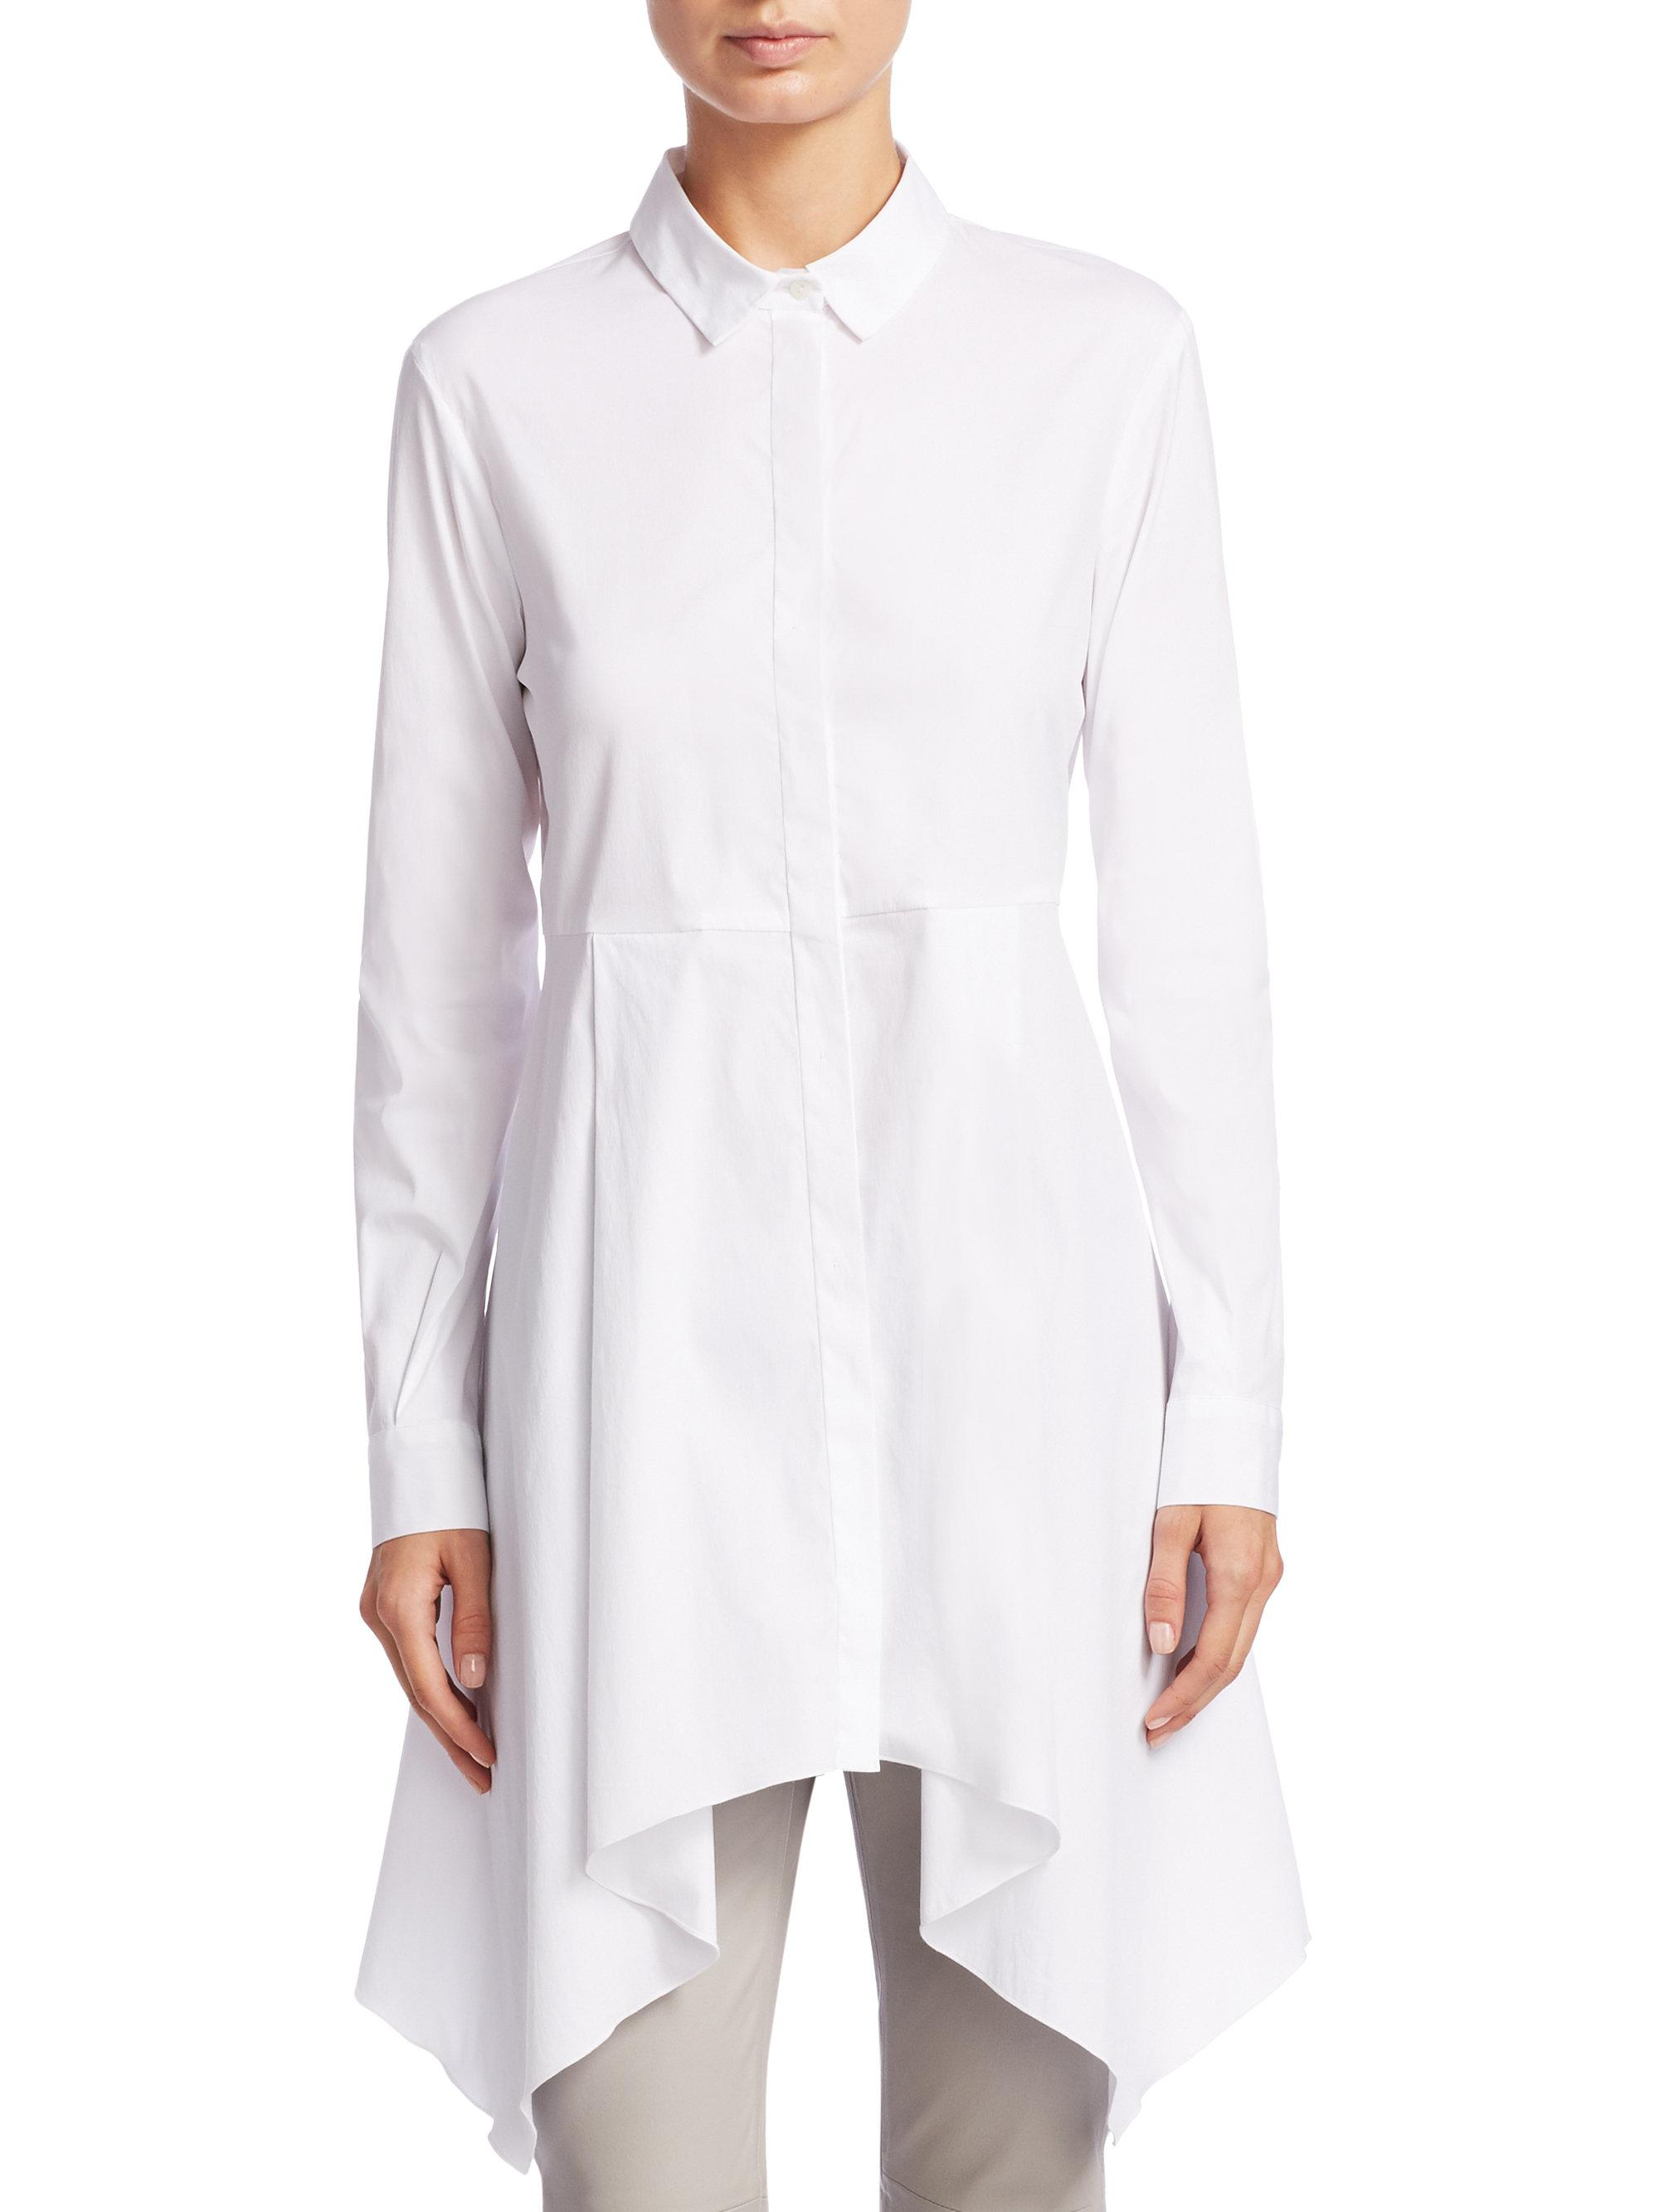 belted collar shirt - White Fabiana Filippi Clearance Brand New Unisex Free Shipping Shopping Online Really Cheap Online LG9UZ4c